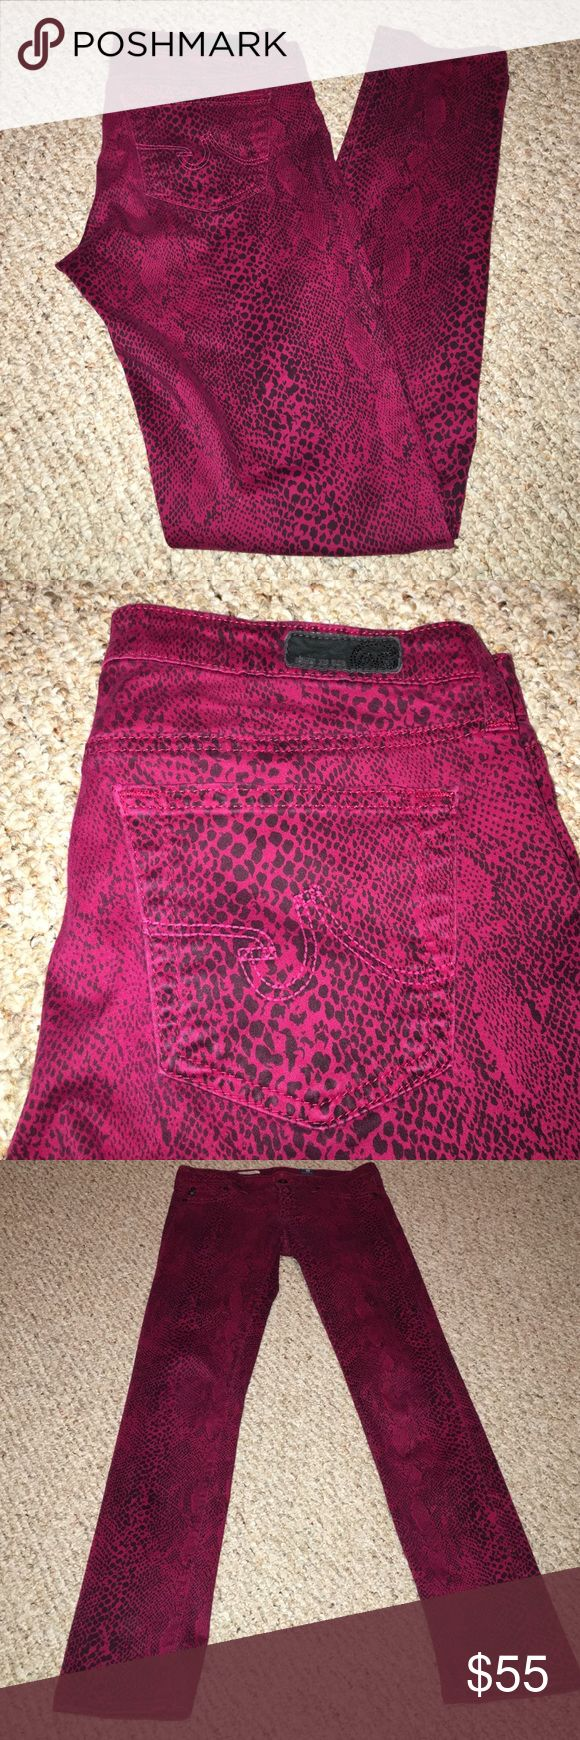 """Anthropologie Adriano Goldschmied Red Leggings EUC. The legging. Super skinny fit. Size 27. Inseam 31"""". Reptile design. Soft cotton blend. AG Adriano Goldschmied Pants Skinny"""